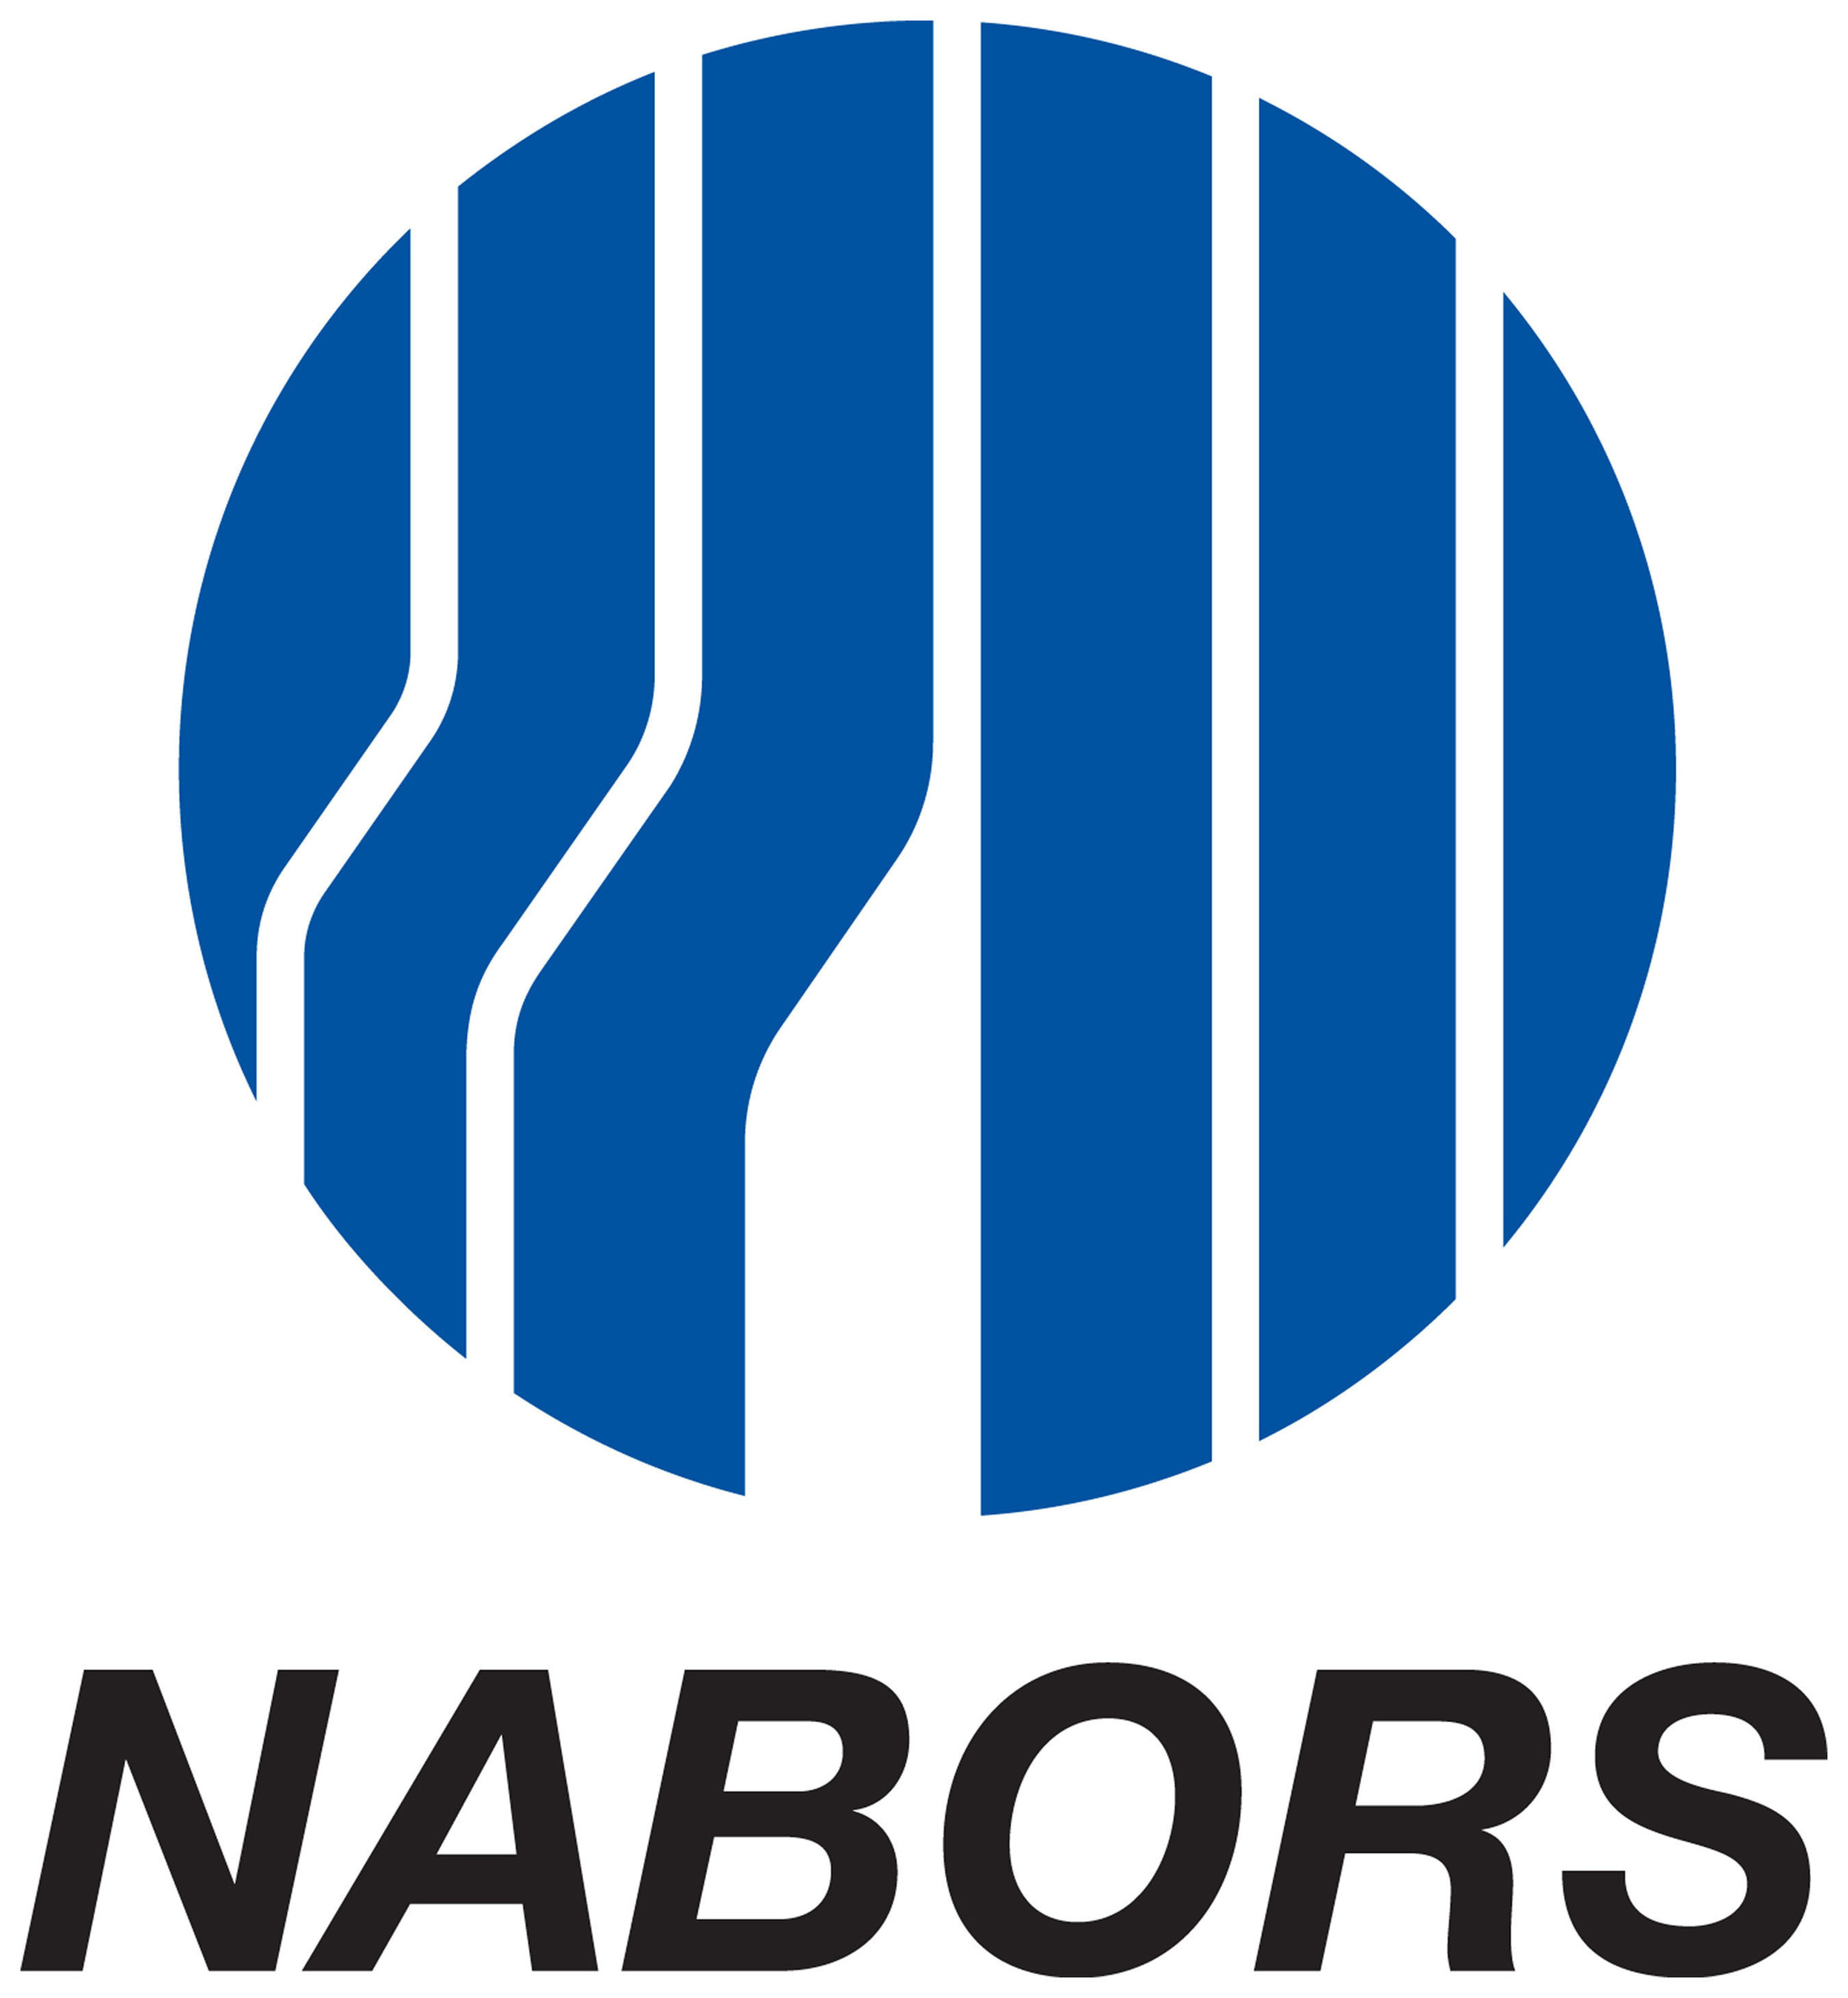 Nabors Industries Ltd. Fourth Quarter 2015 Earnings Conference Call Invitation